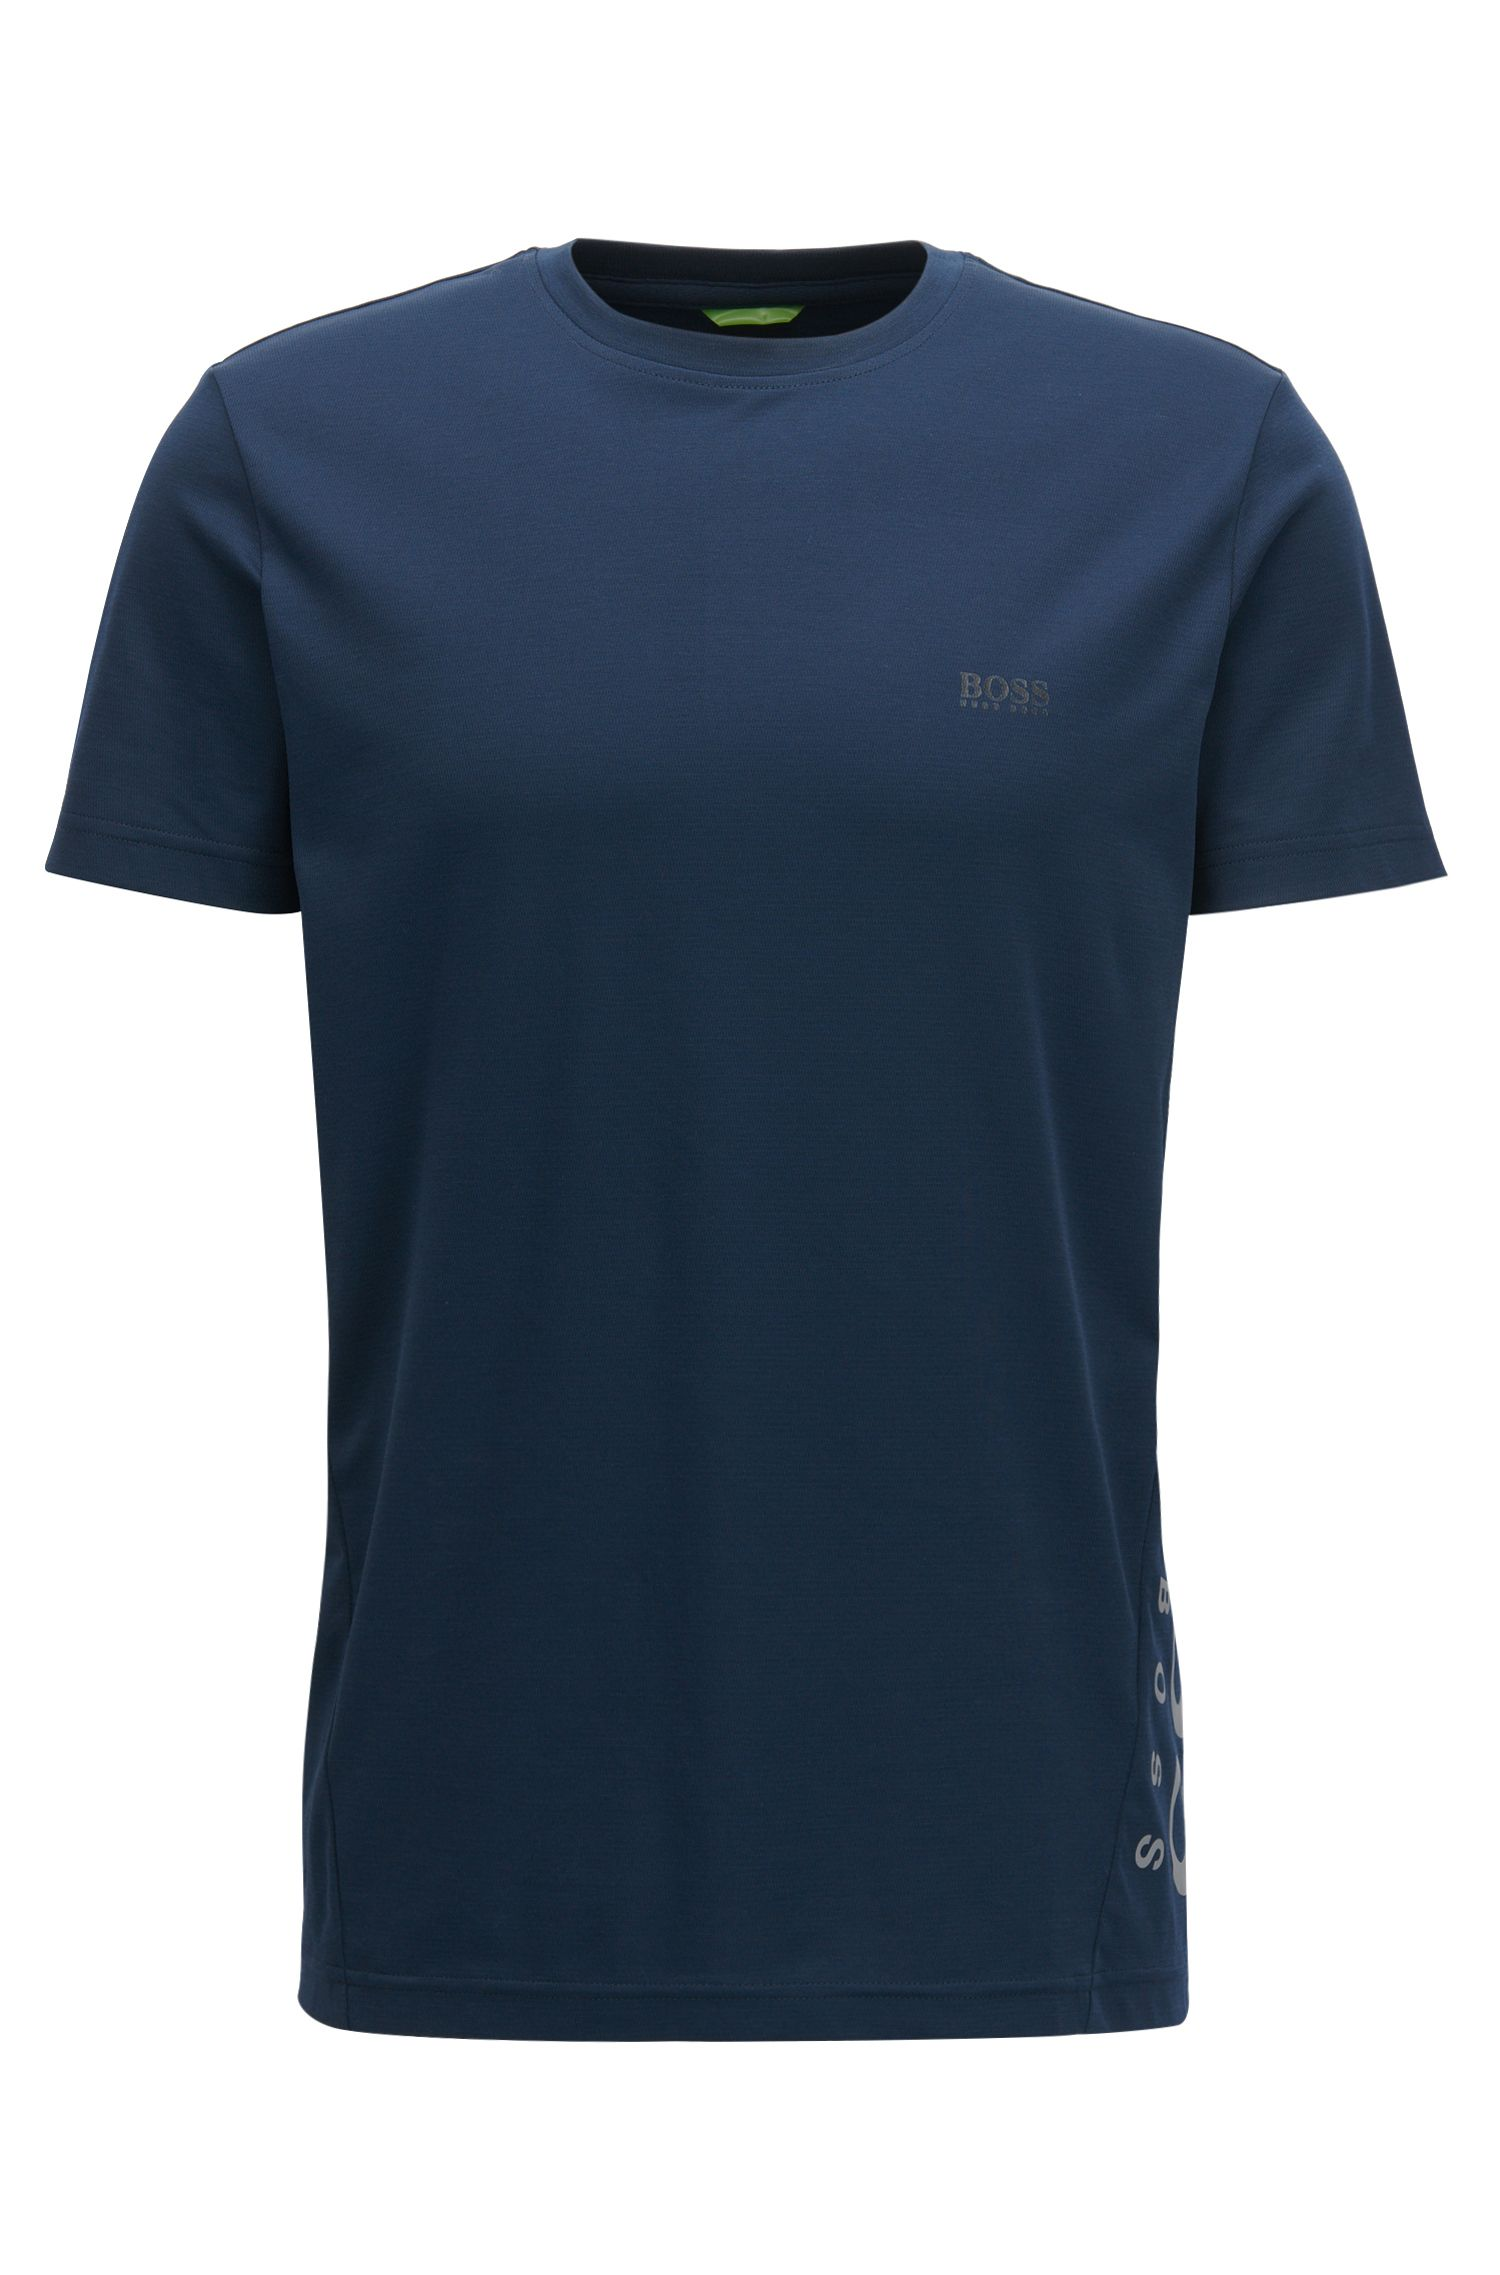 Slim-fit cotton-blend T-shirt with moisture management